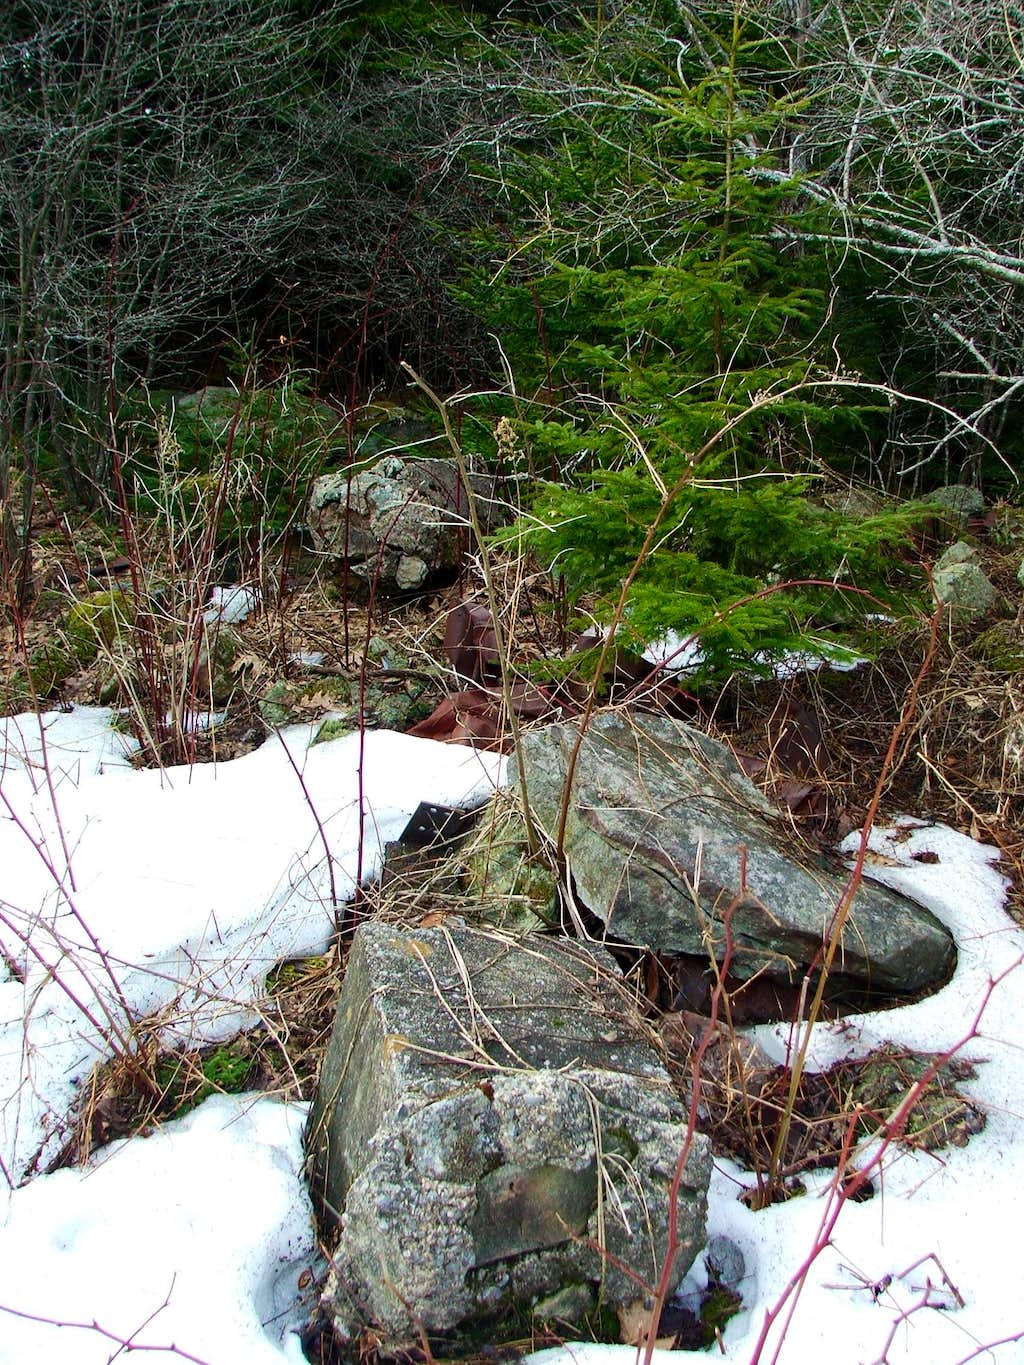 Remains of Red Spruce Knob Fire Tower